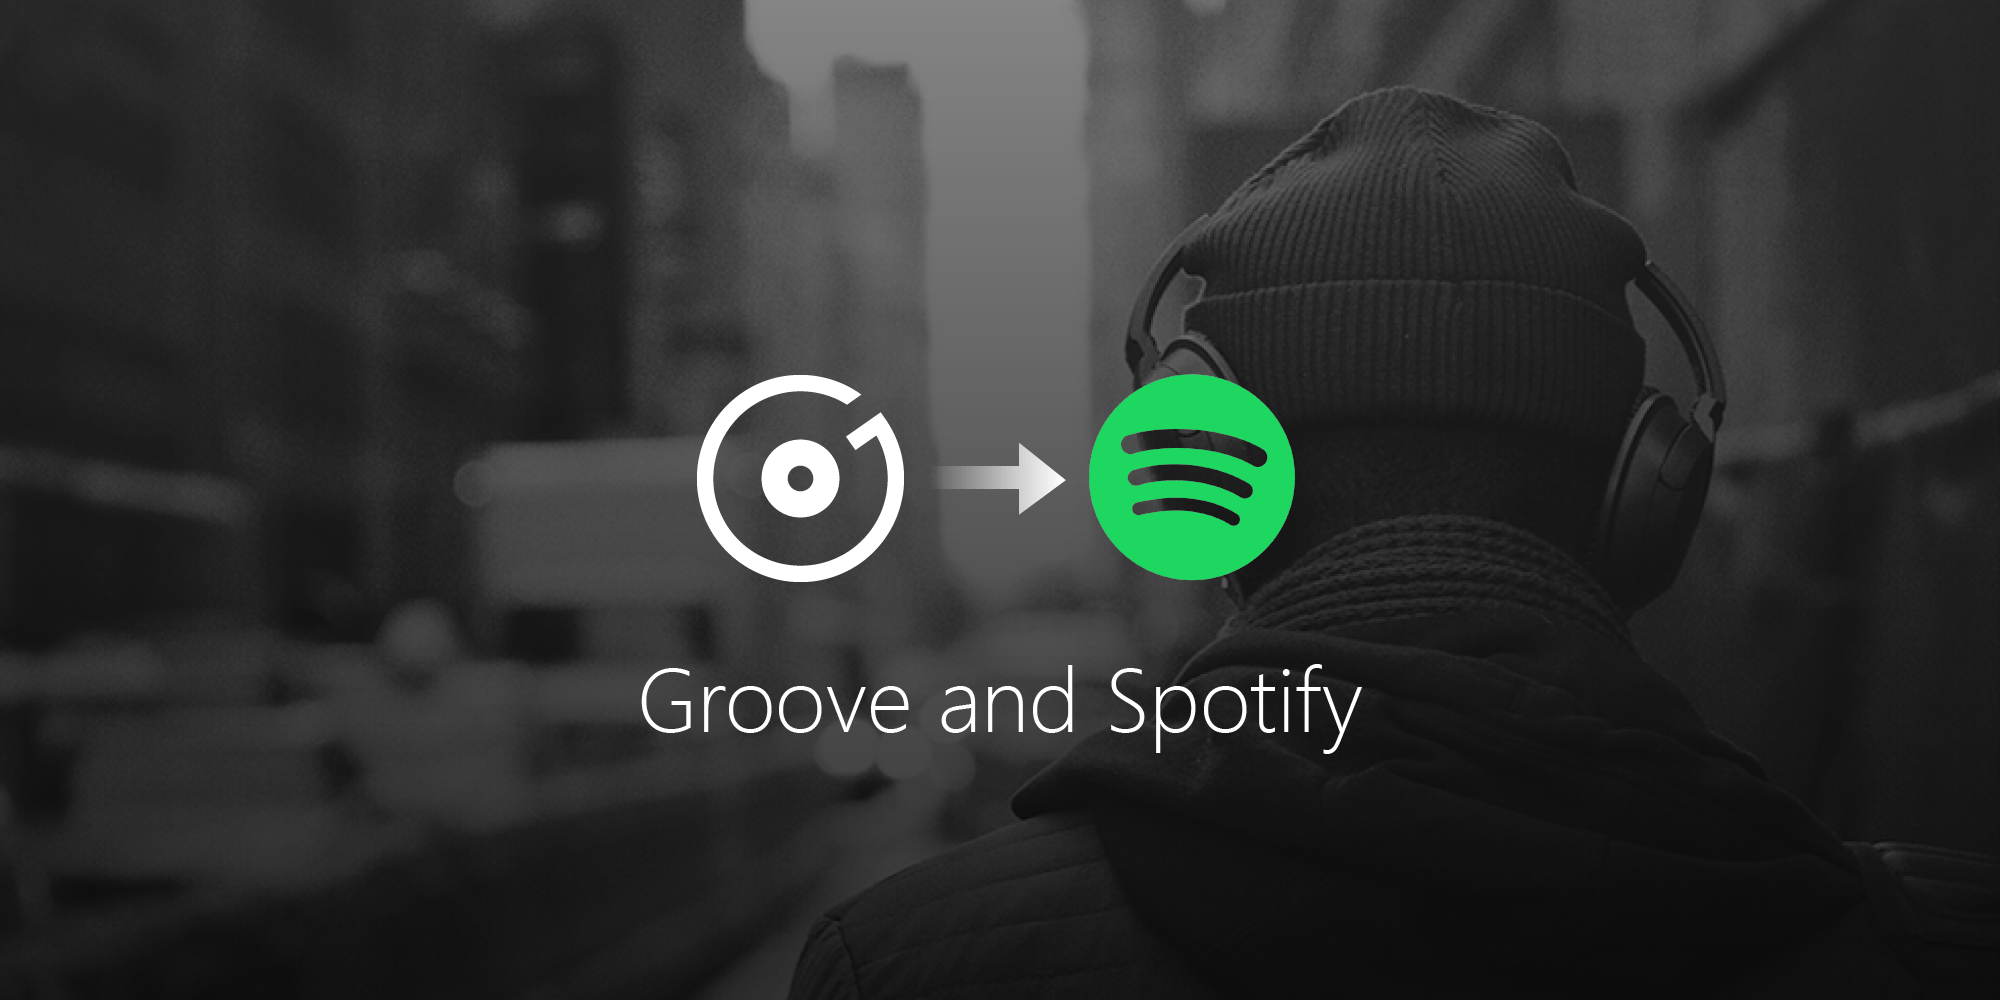 Microsoft to discontinue Groove Music, asks users to go to Spotify